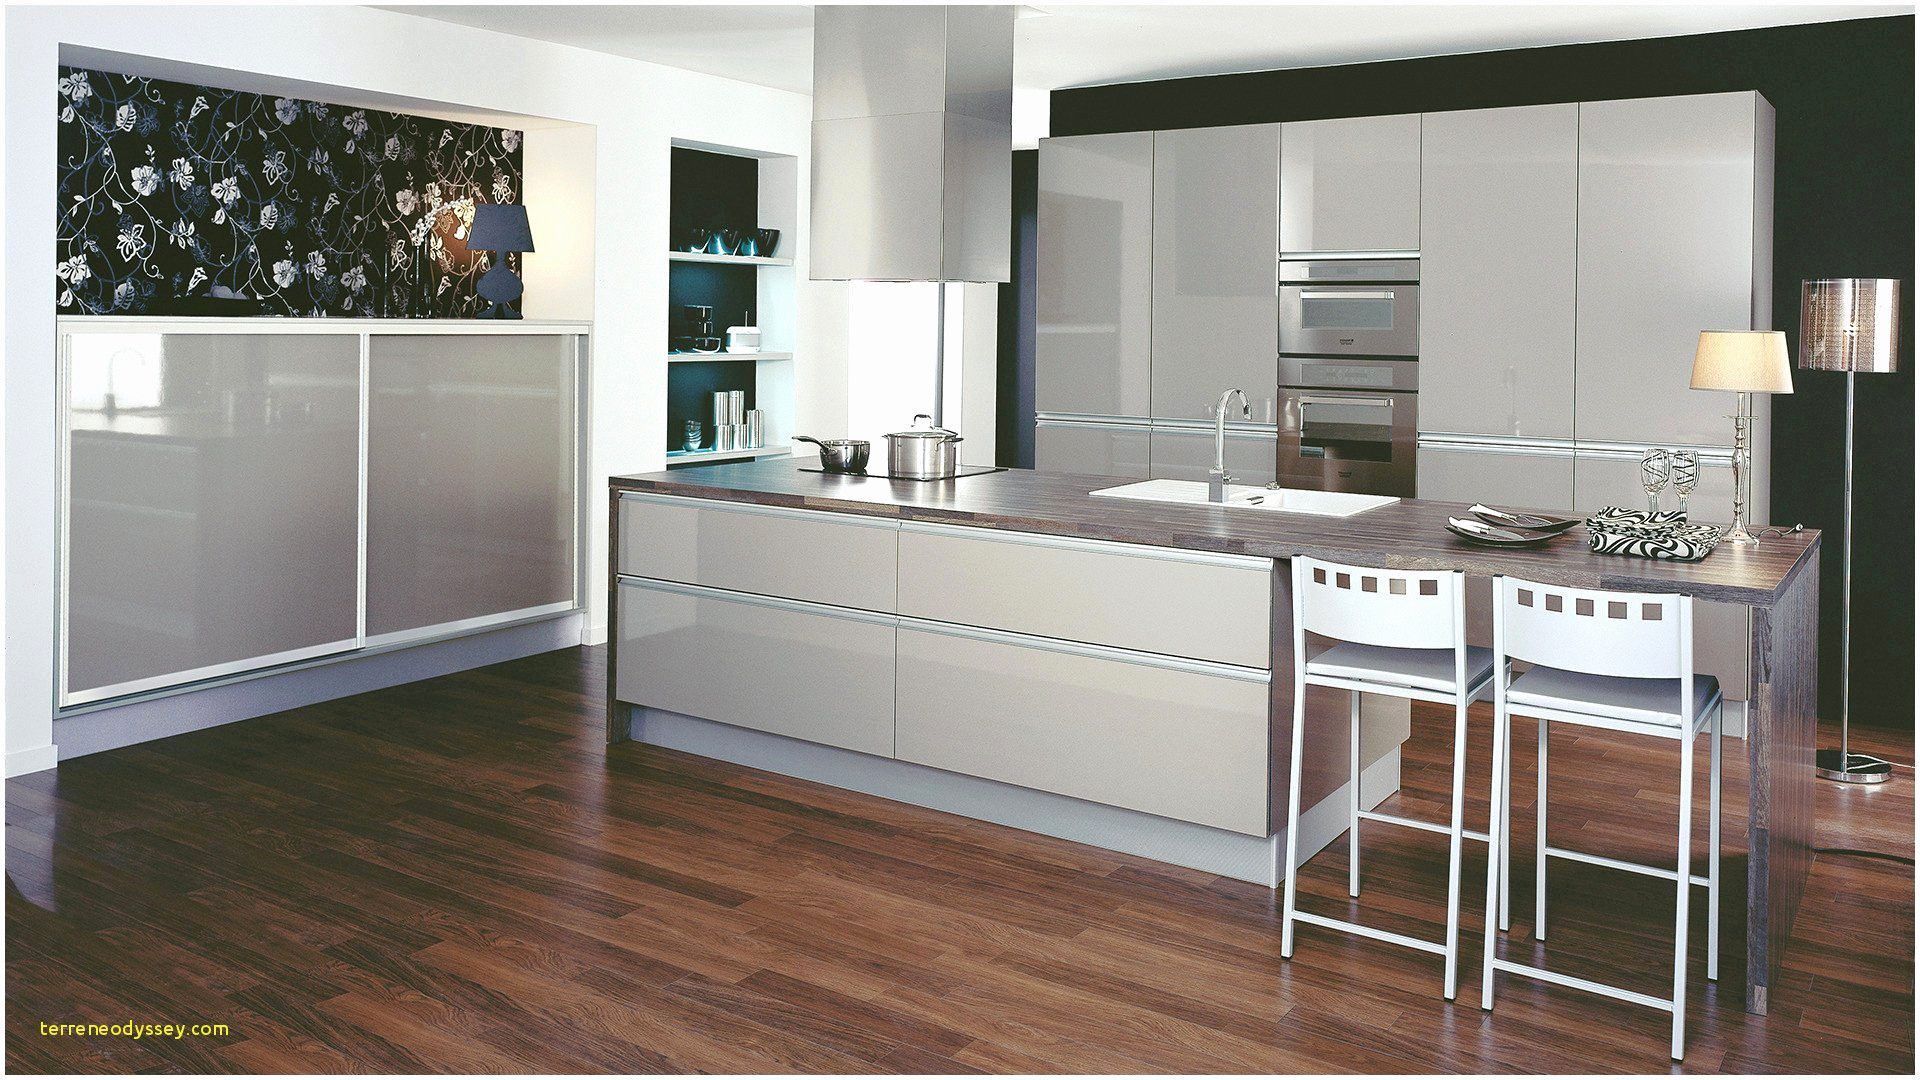 Best Of Cuisines Equipees Conforama Check More At Jonesst Net Conforama Conforama Cocinas Cuisines Equipees In 2020 Kitchen Design Home Decor Home